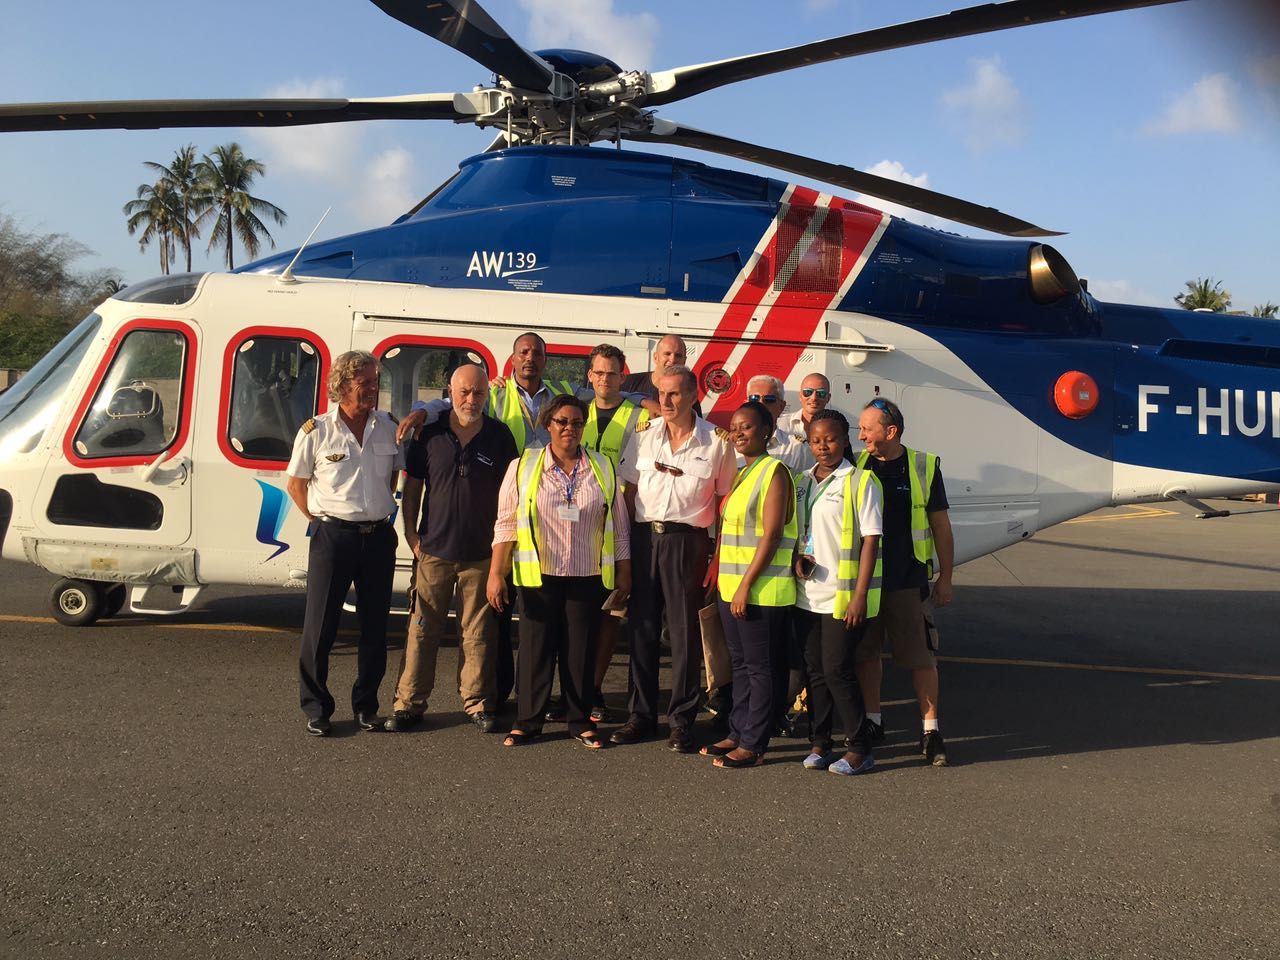 Héli-Union Received Recognition Medals for its Helicopter Transport Services in Tanzania